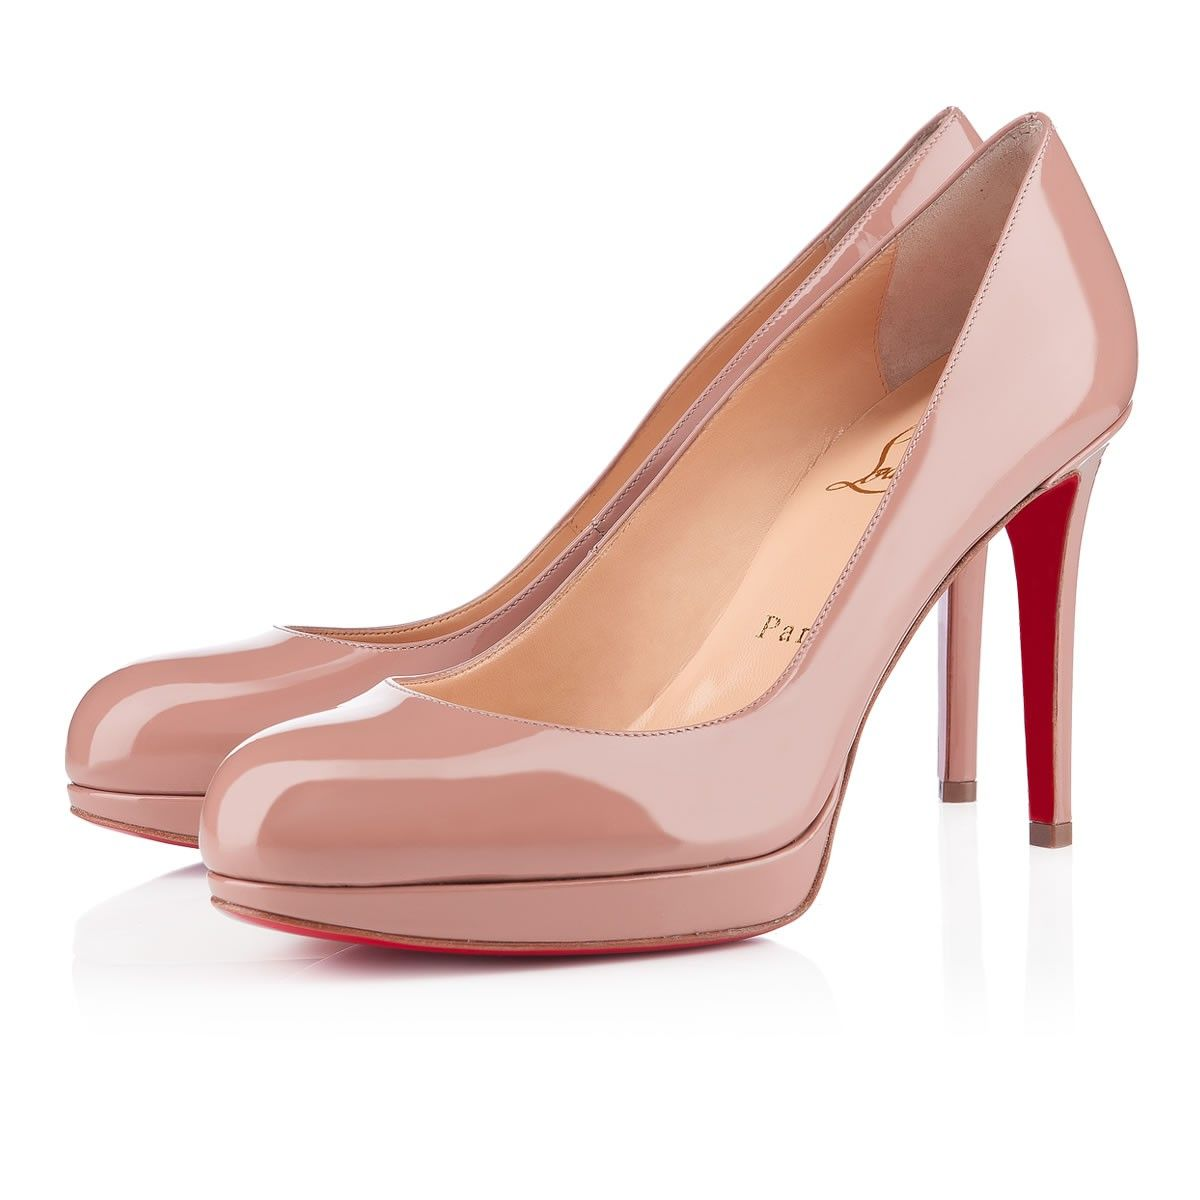 new arrival 9f558 184ed New Simple Pump 100 Nude Patent Leather - Women Shoes ...